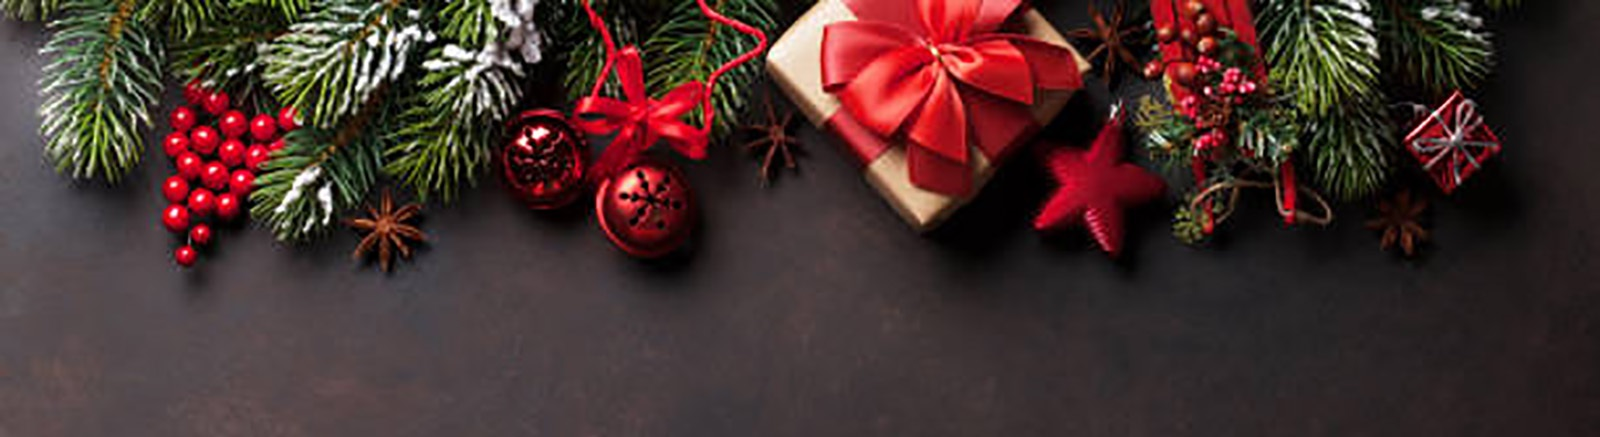 Xmas Background Luxury Christmas Gifts for Him and Her 2018